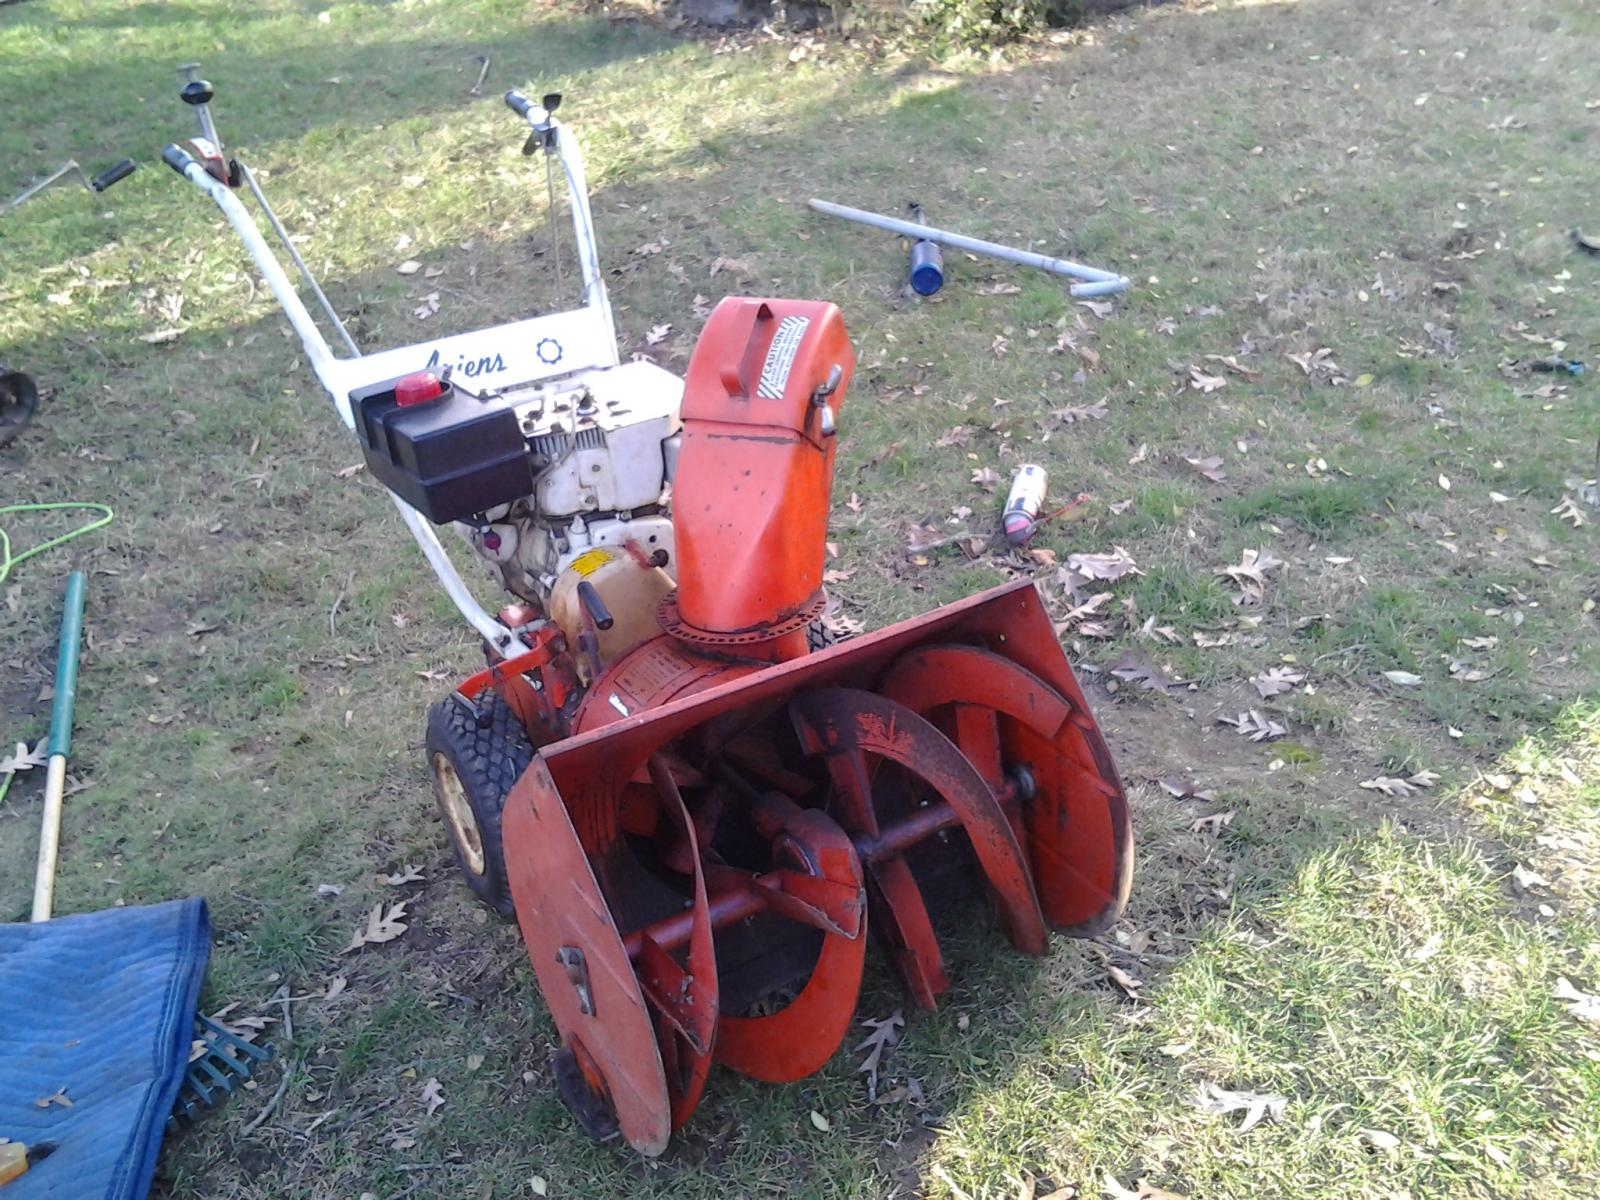 my old ariens to the rescue-20141214_143051.jpg